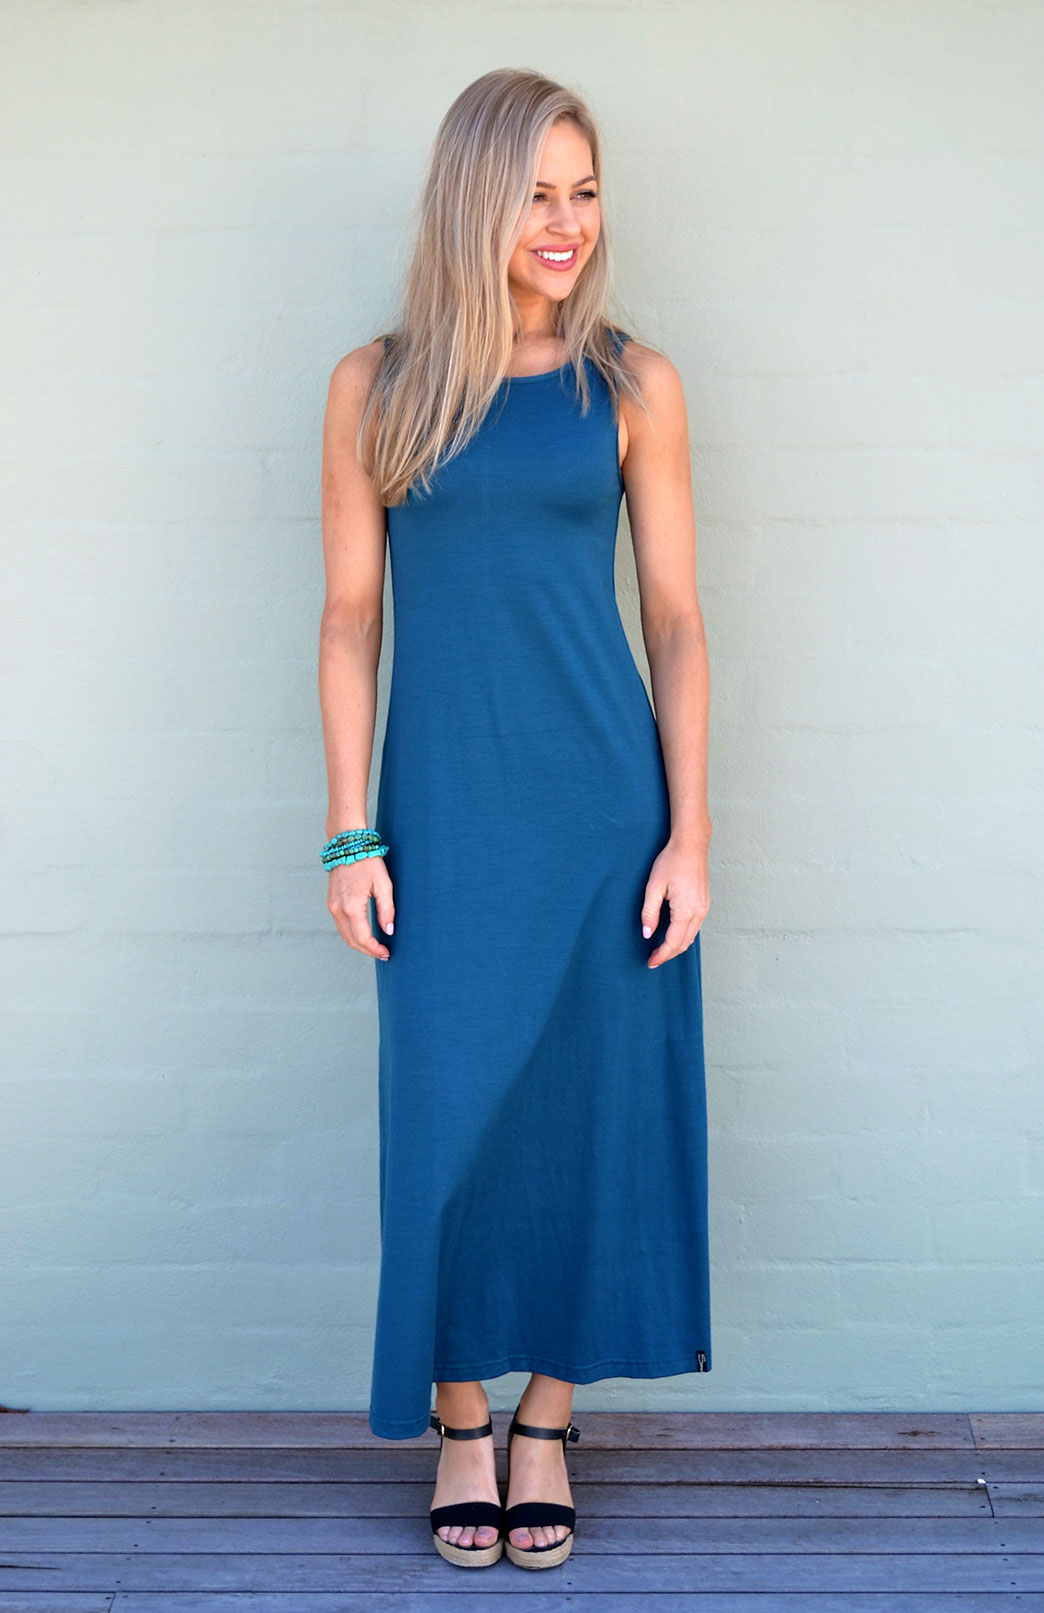 Boat Neck Maxi Dress - Women's Teal Long Summer Maxi Wool Dress - Smitten Merino Tasmania Australia